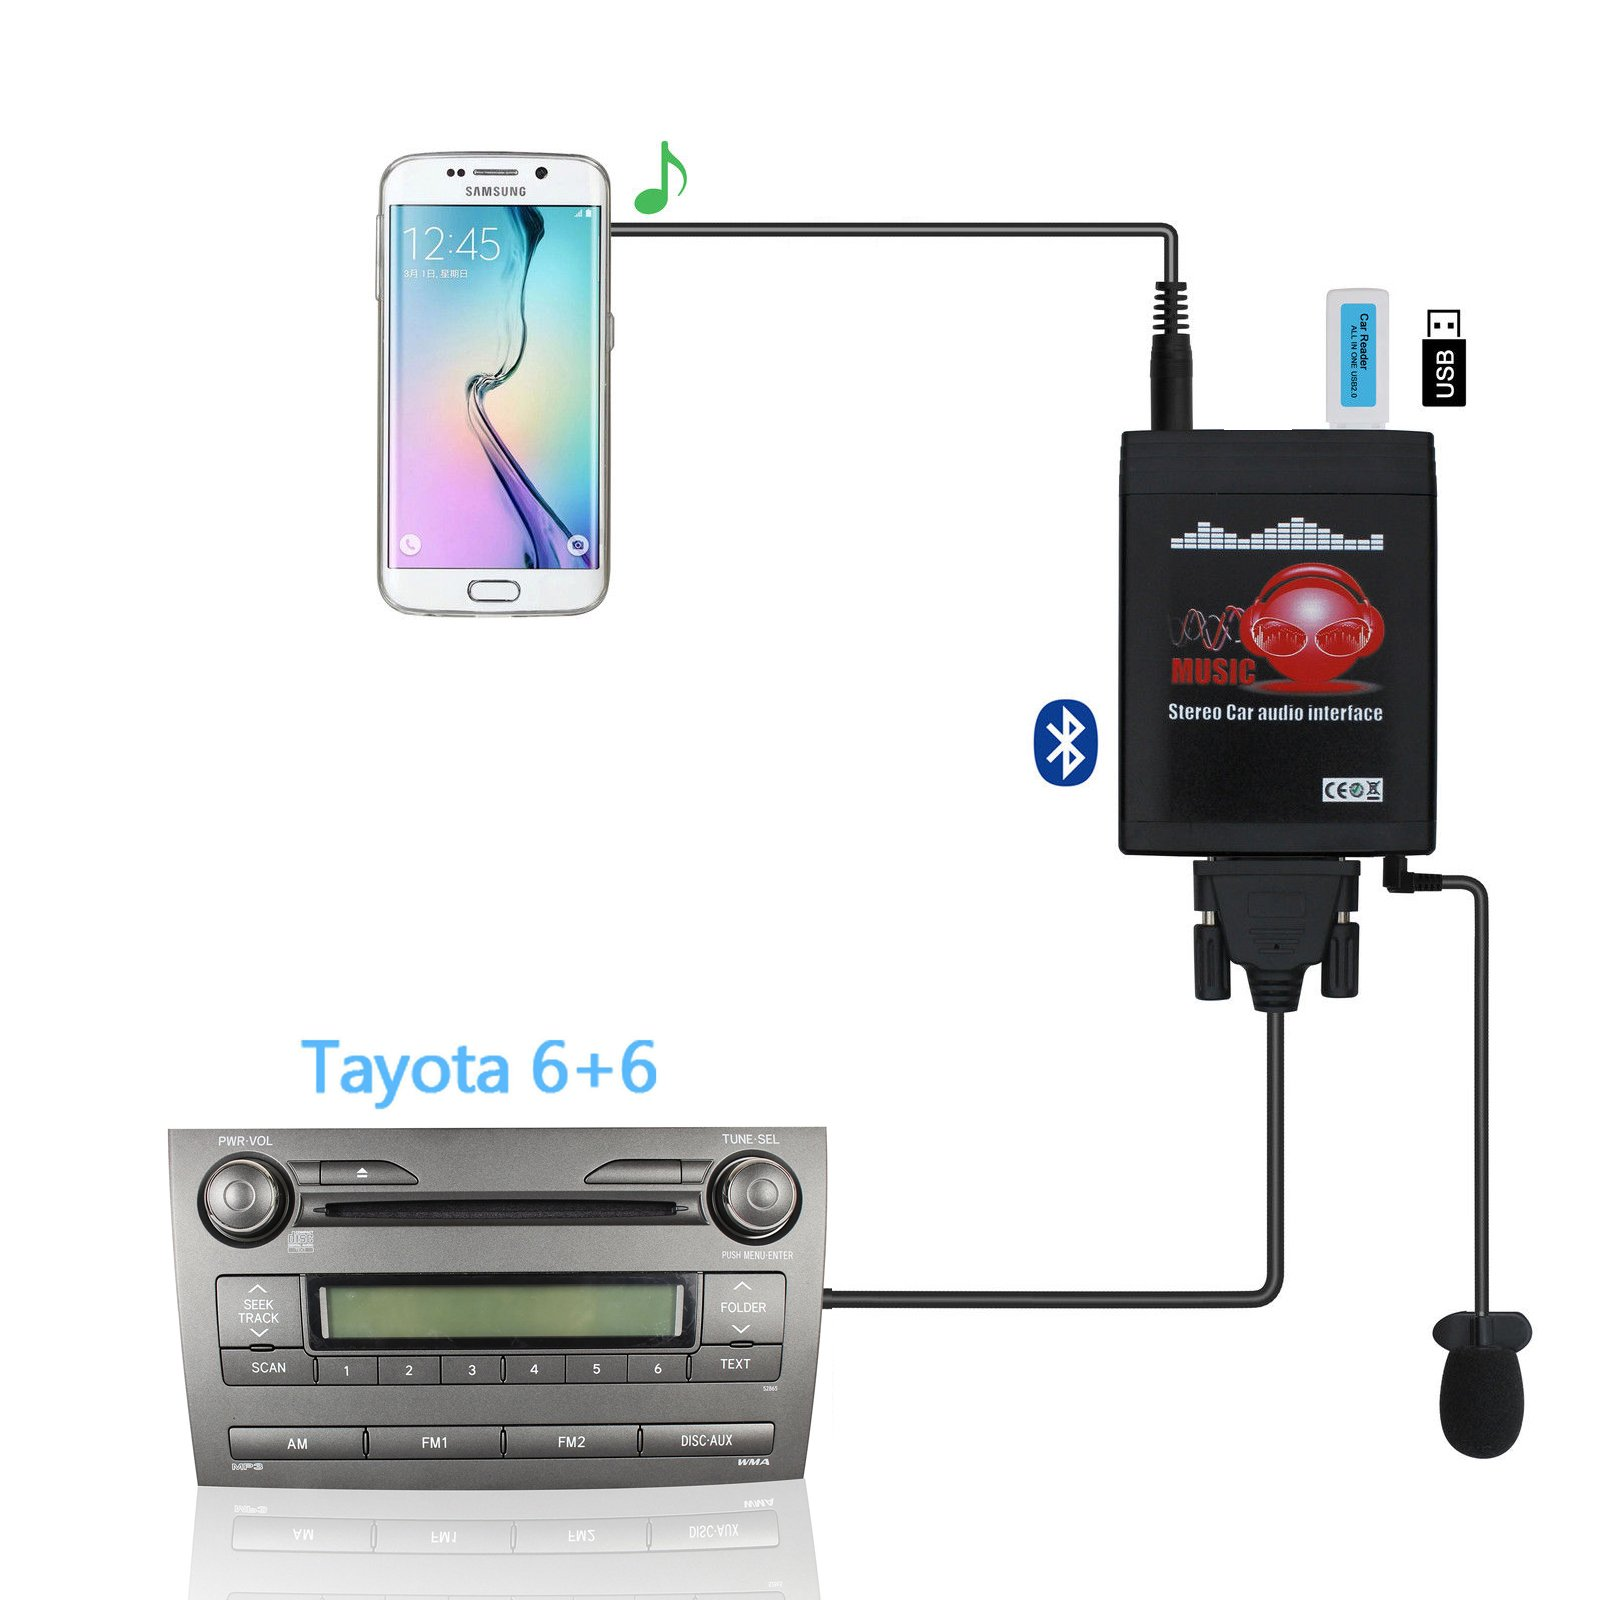 Bluetooth Car Adapter, Yomikoo Car MP3 USB/AUX 3.5mm Stereo Wireless Music Receiver Wireless Hands Free Auto Bluetooth Adapter For Toyota (6+6) Pin Camry Tacoma Corolla Tundra 4runner RAV4 Lexus